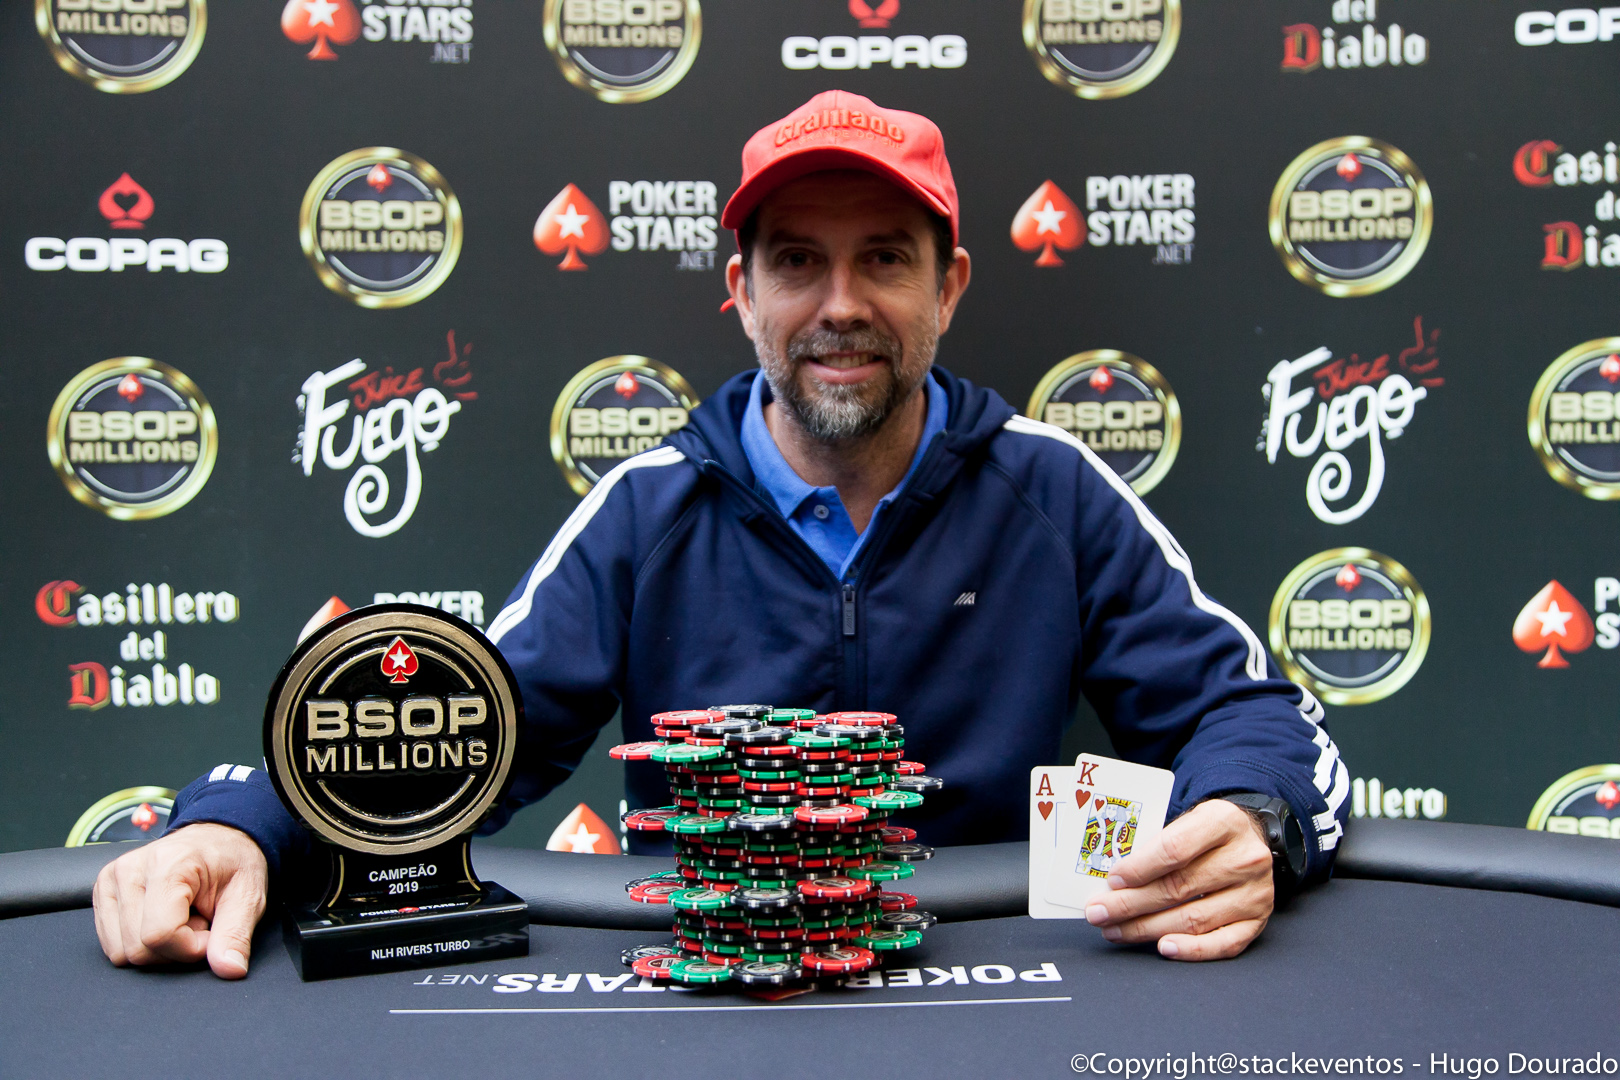 Márcio de Oliveira campeão do Rivers do BSOP Millions